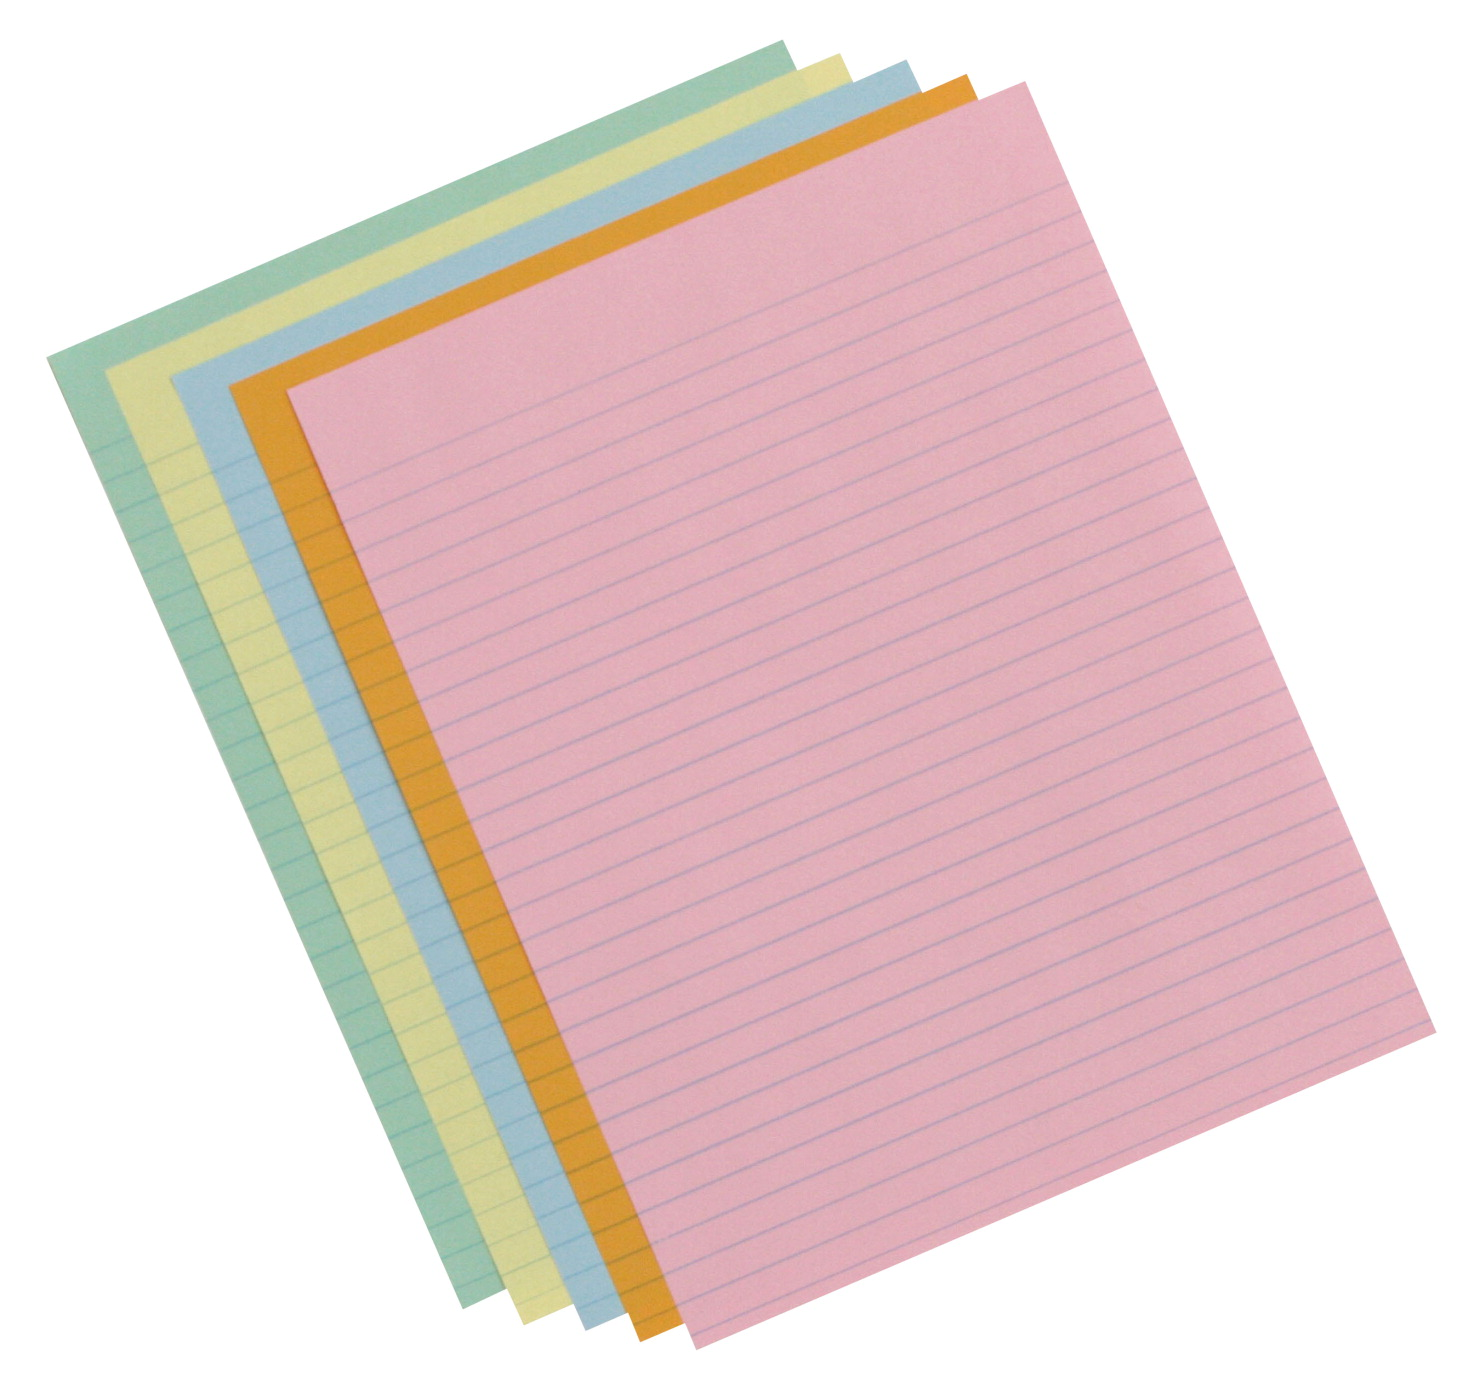 School Smart Ruled Exhibit Paper, 8-1/2 x 11 Inches, Assorted Colors, 500 Sheets